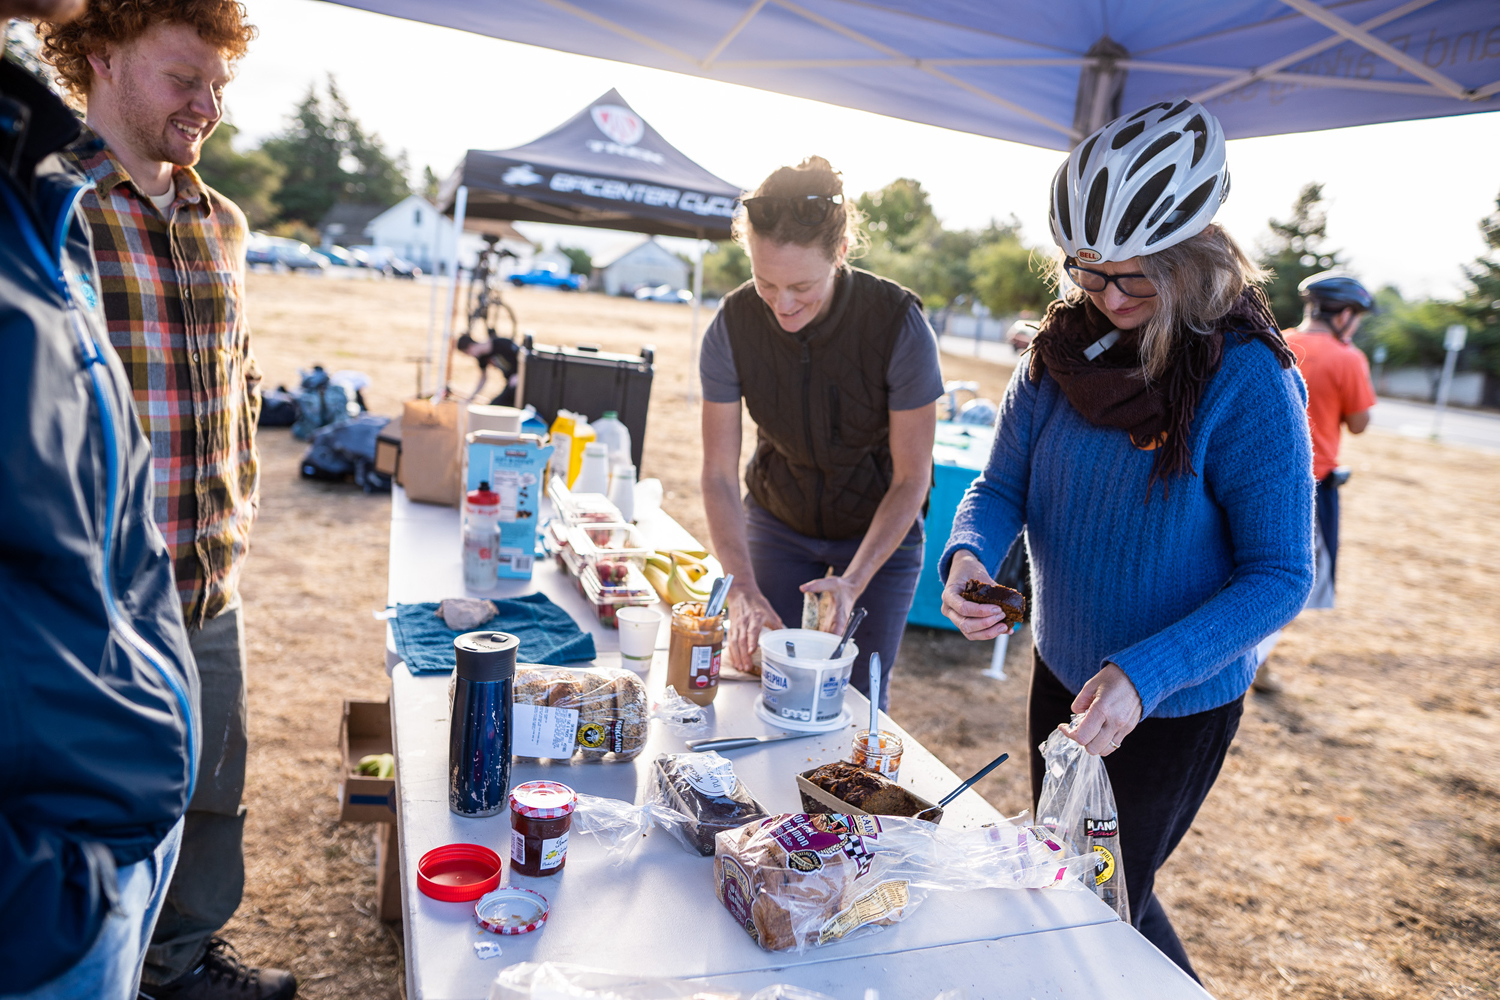 Diving into the breakfast goodies at last fall's Bike to Work Day at UCSC's main entrance. Photo courtesy Ecology Action.